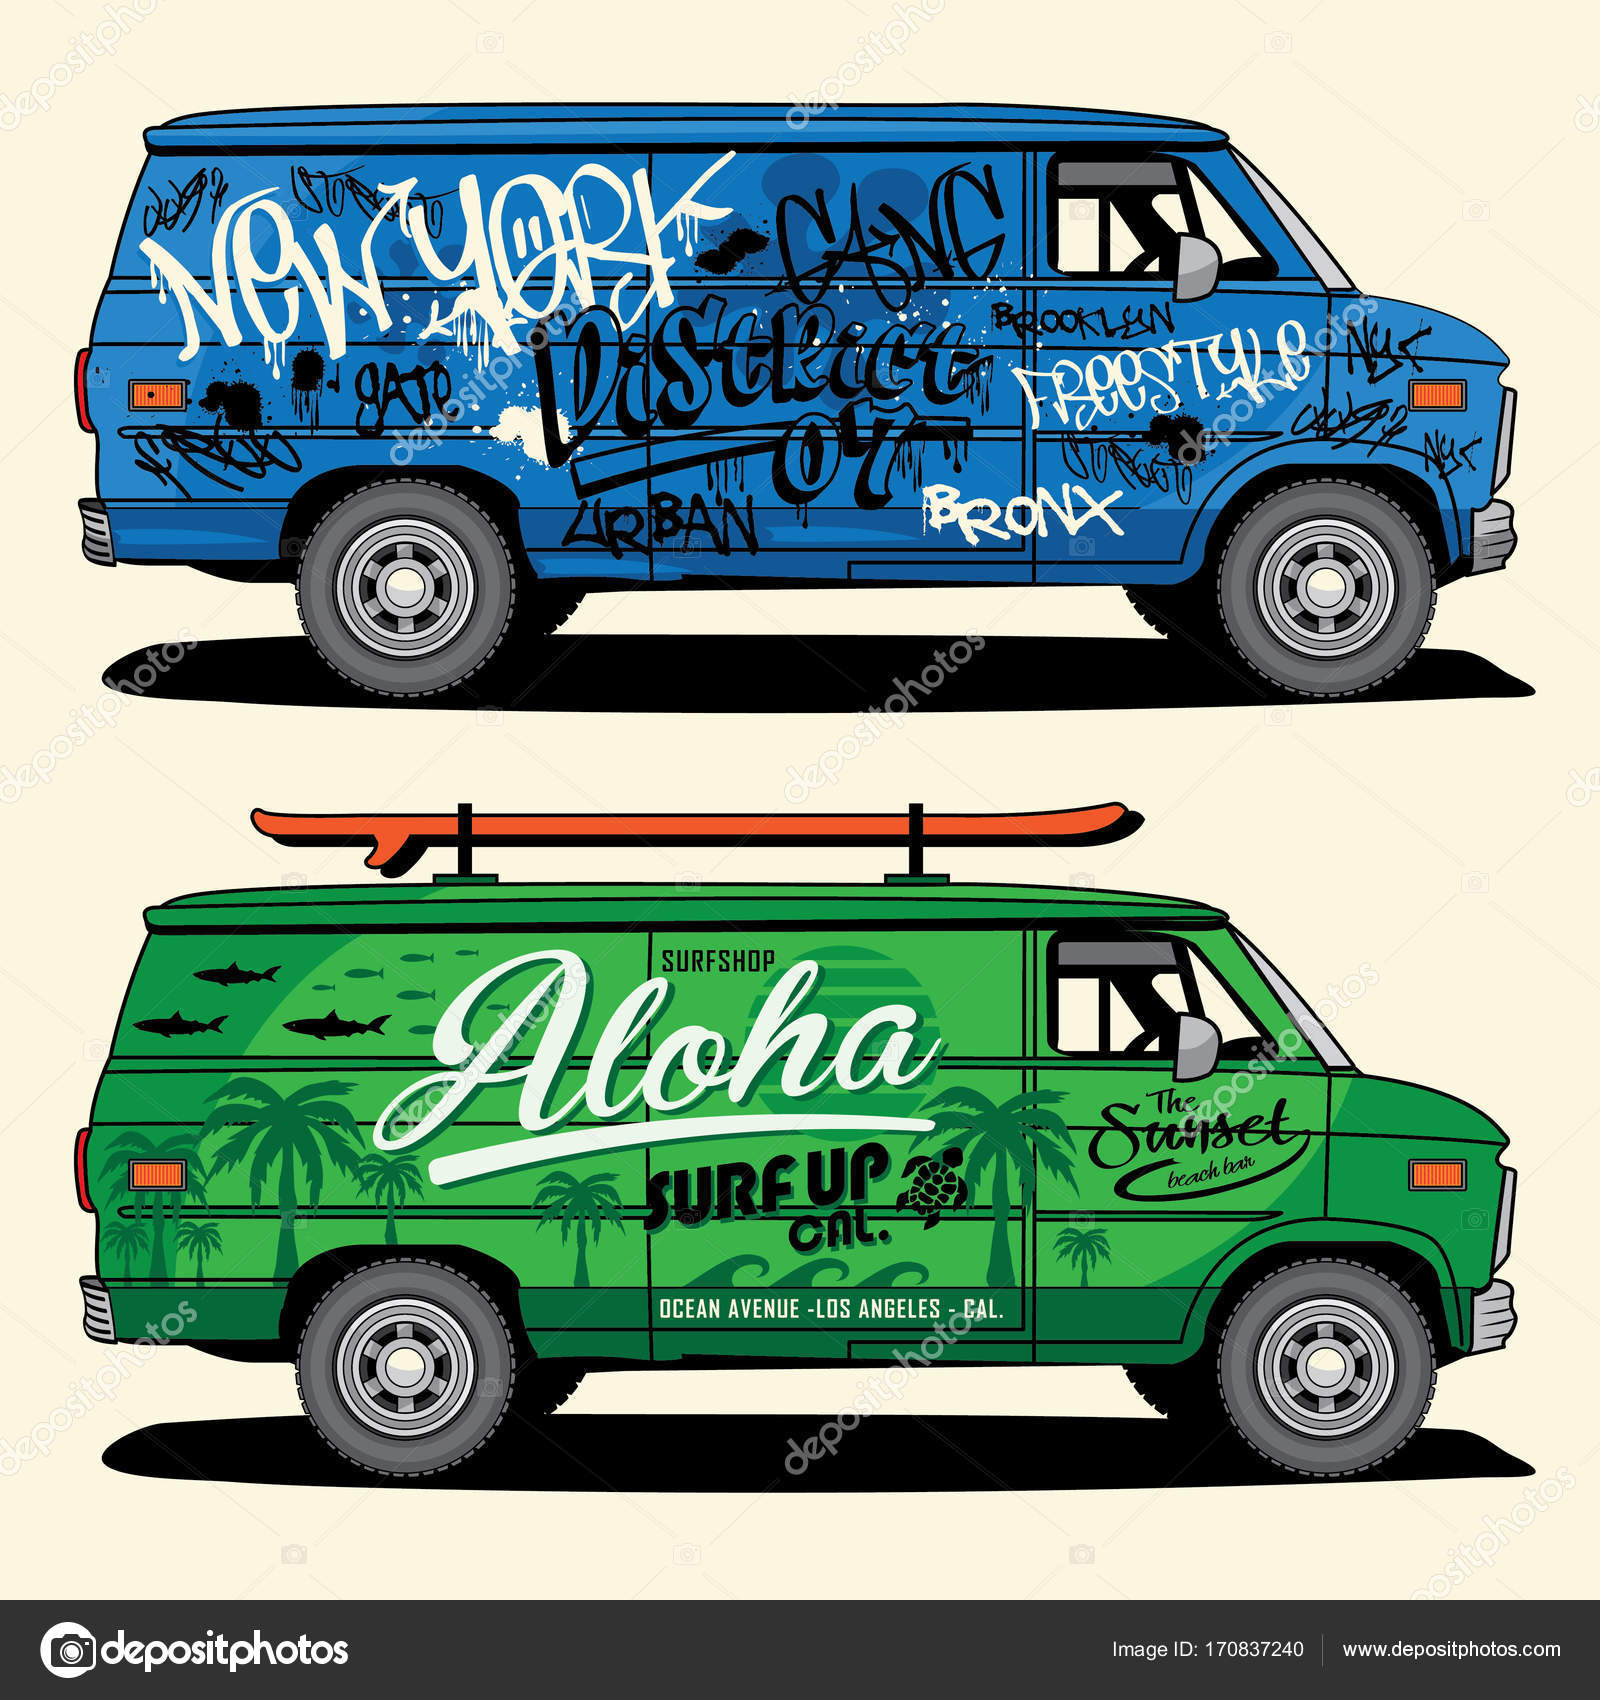 342ba8d36c Van graffiti and surf typography — Stock Vector © Syquallo  170837240